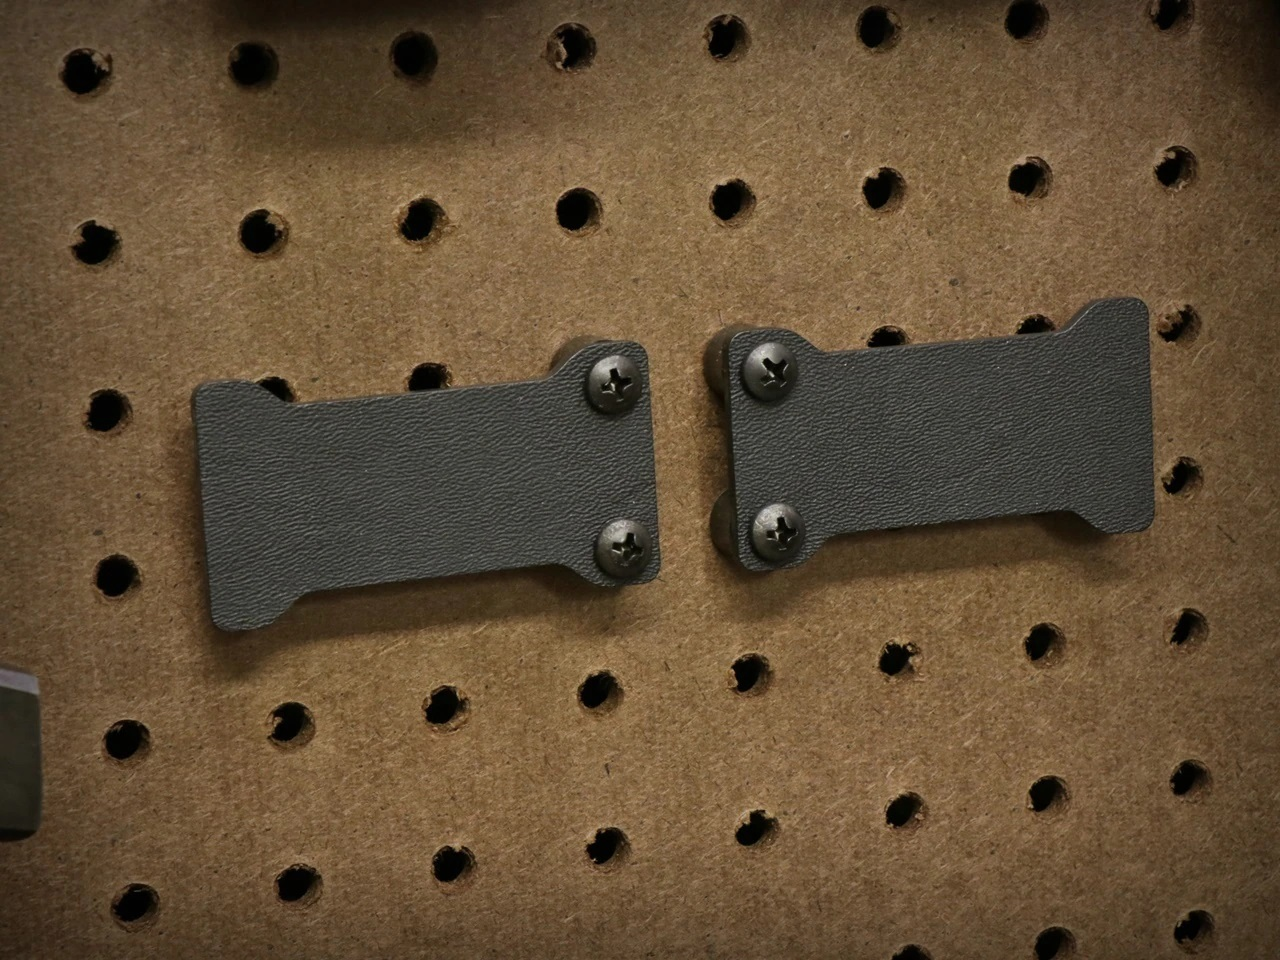 Gear Organization Made Easy with Sagewood Gear's Clip Hangers